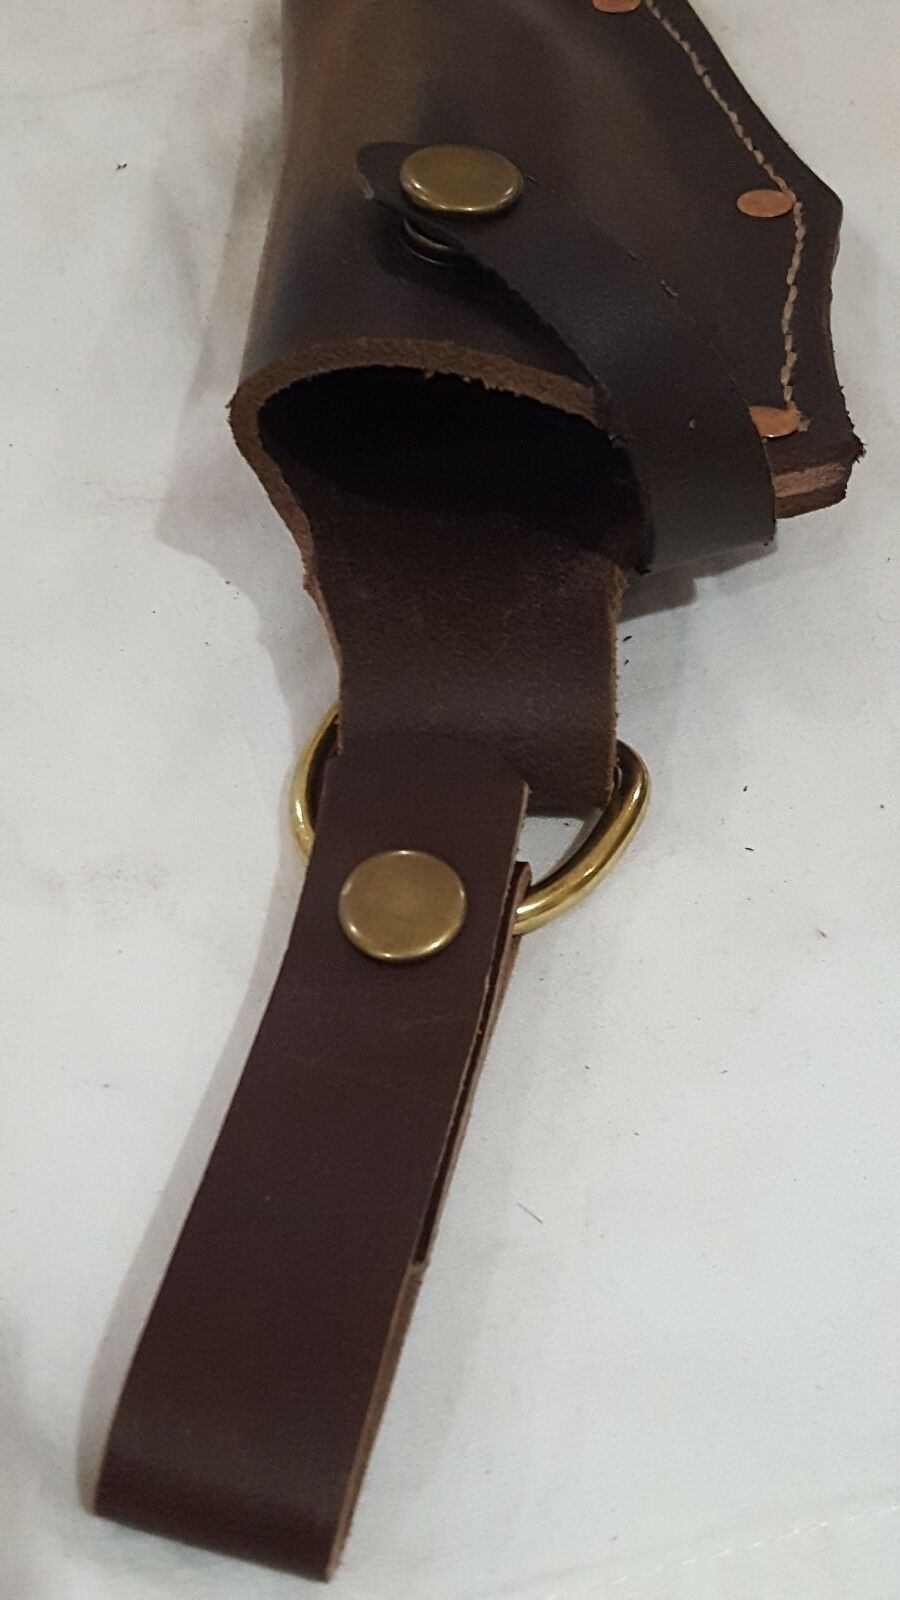 Handmade Quality ESEE 5 Knife Sheath made with with with 3mm Leather + Dangler Bushcraft 514c1a